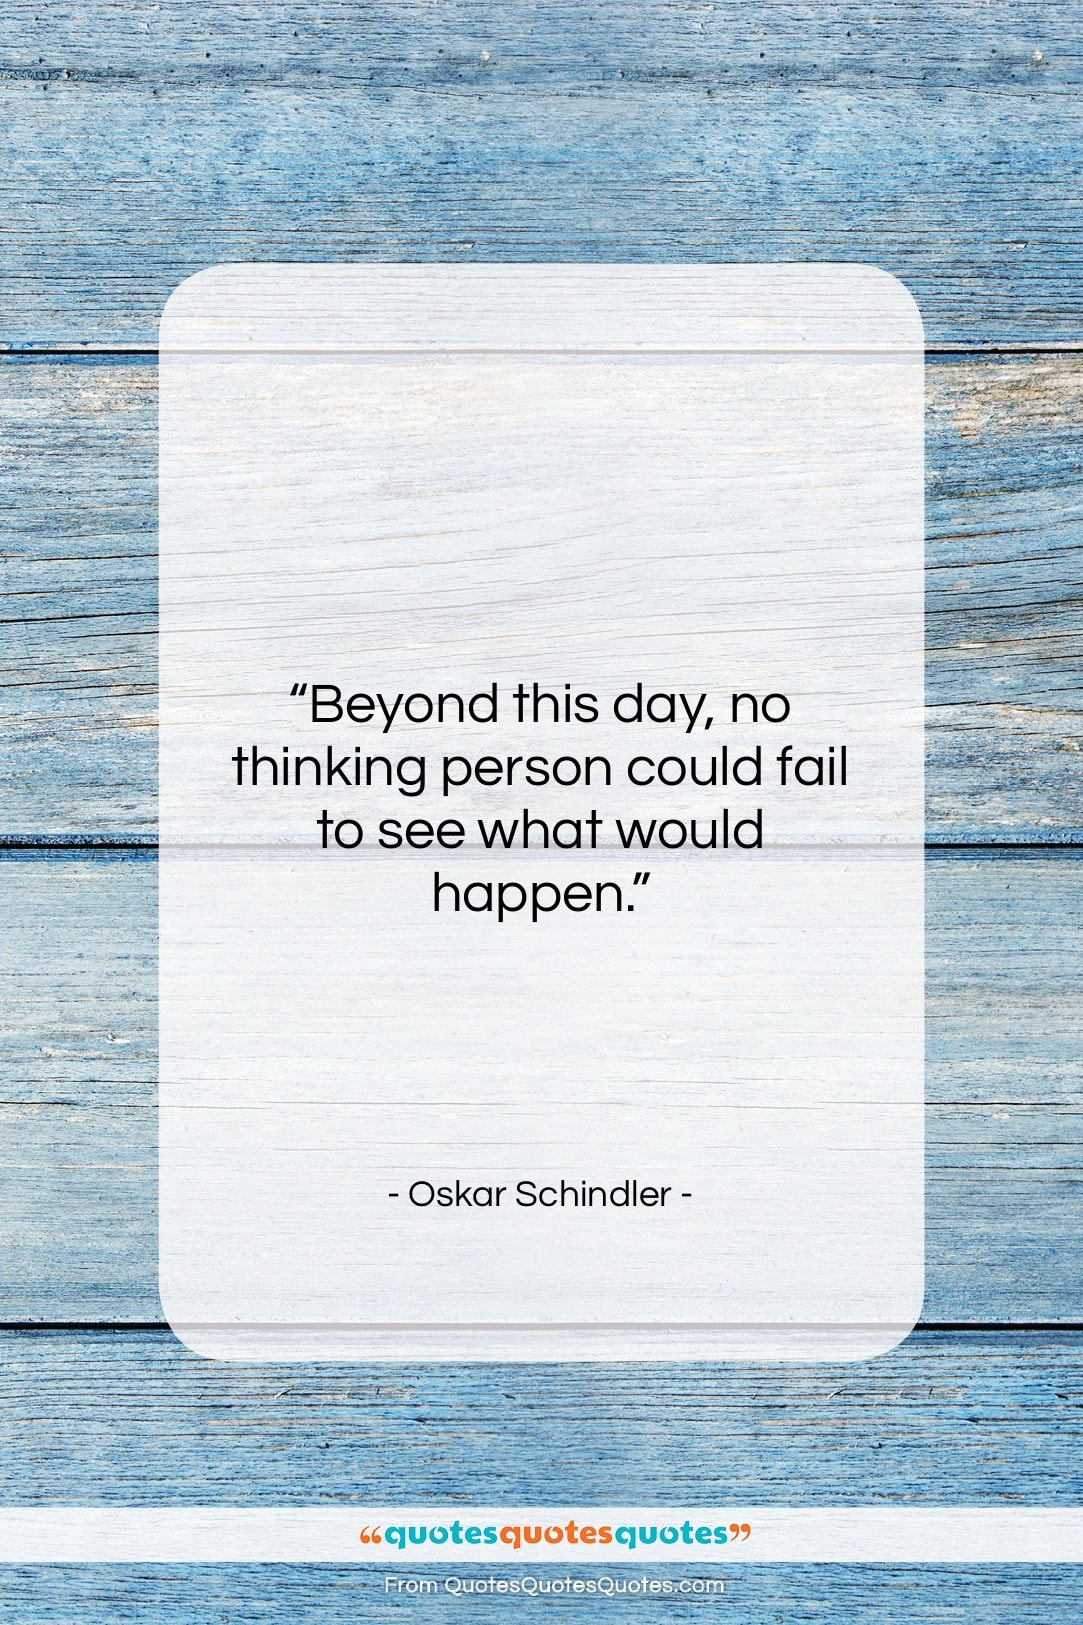 """Oskar Schindler quote: """"Beyond this day, no thinking person could…""""- at QuotesQuotesQuotes.com"""